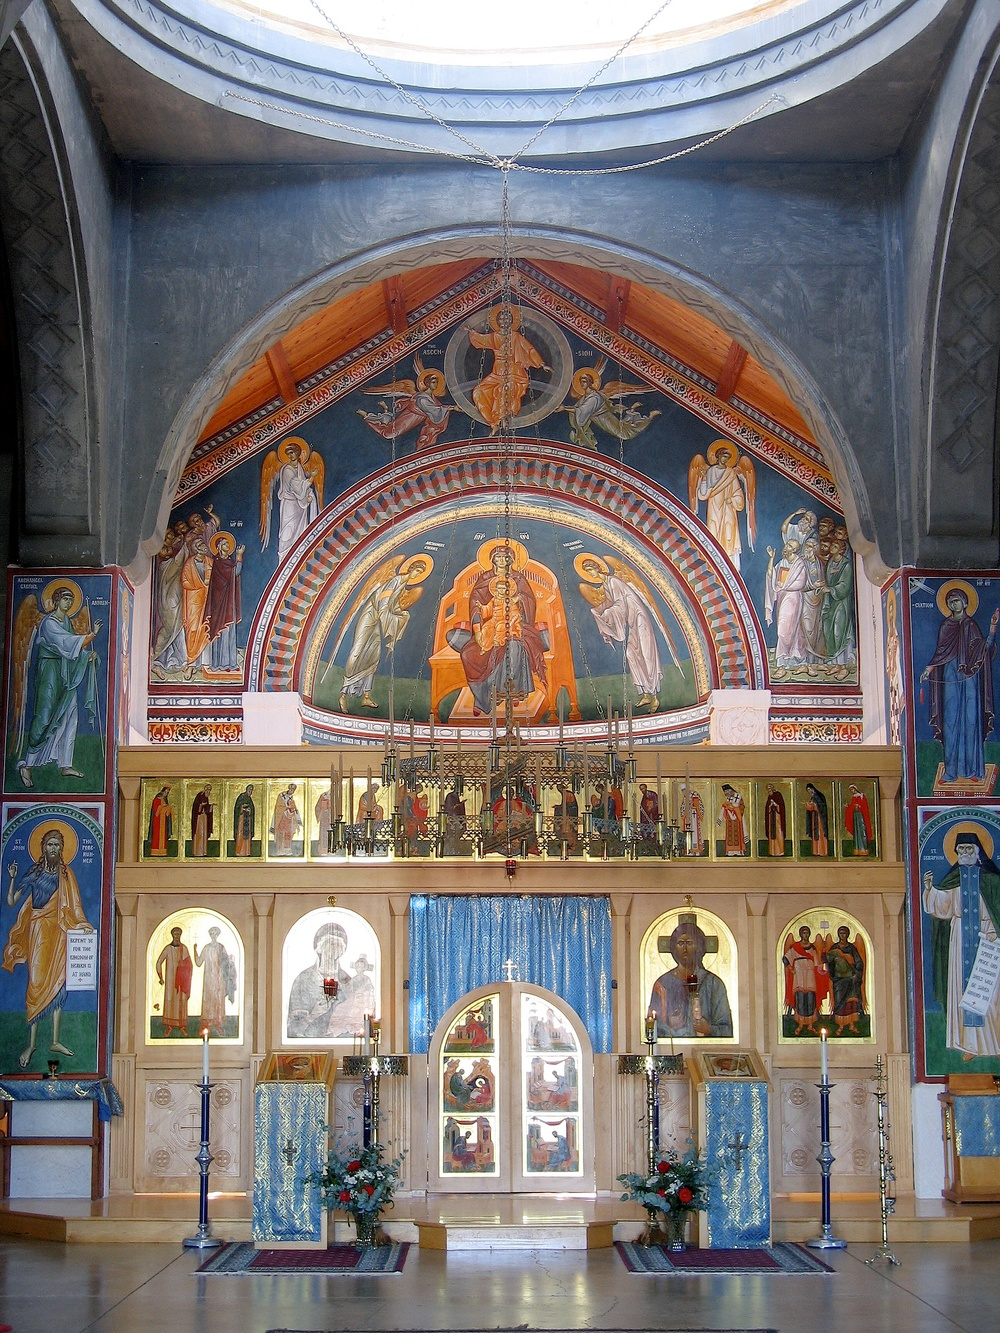 Fig 1. Saint Seraphim's Orthodox Church, Santa Rosa, California, view to the east. The panel icons of the icon screen, and the Virgin Enthroned in the Apse are painted in egg tempera. The rest of the walls shown are painted in fresco. Frescoes are planned for the remaining walls, columns and arches, as well as the dome.